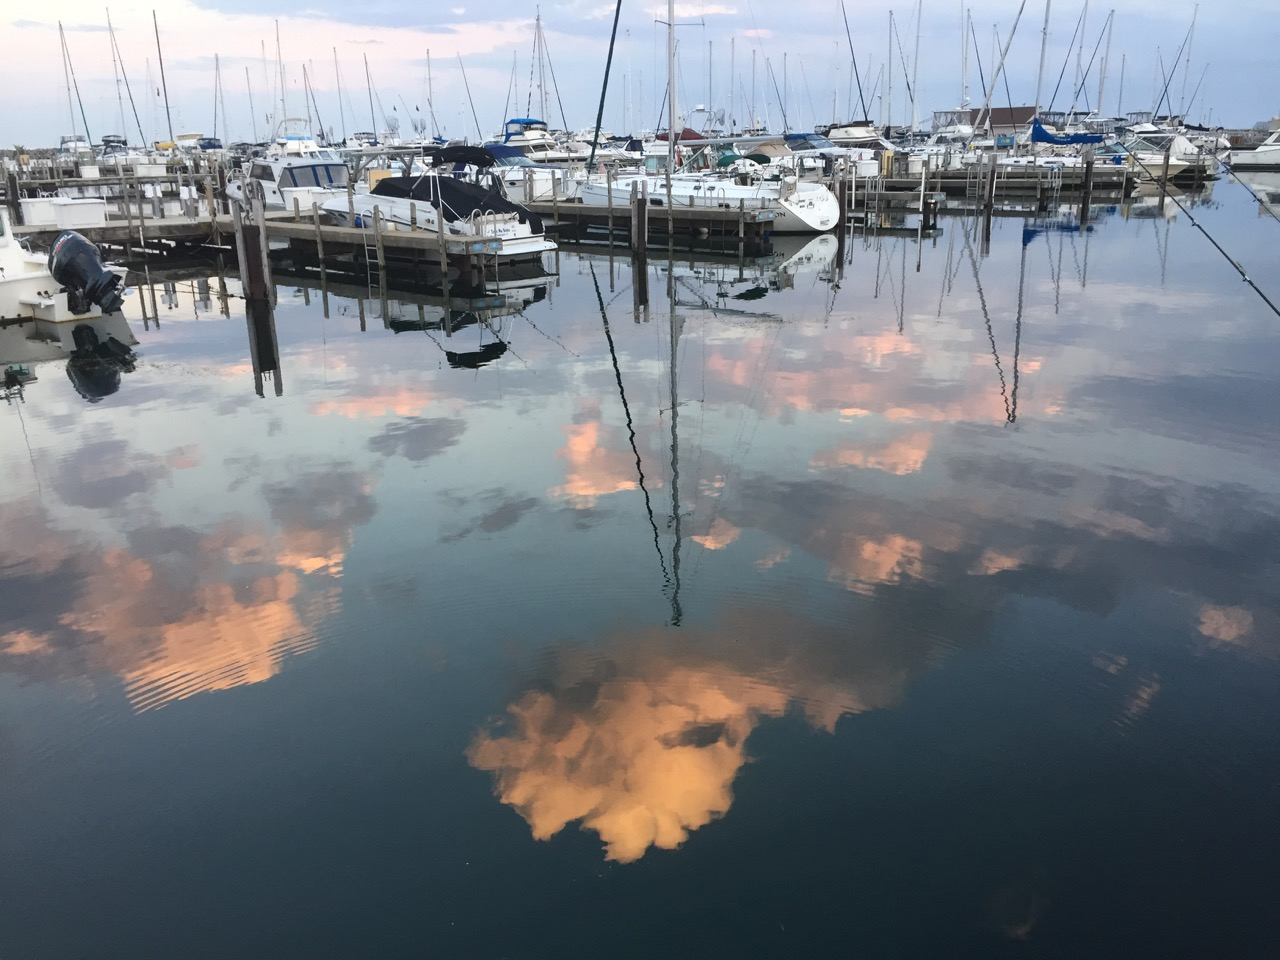 clouds reflected on the water in Waukegan Harbor